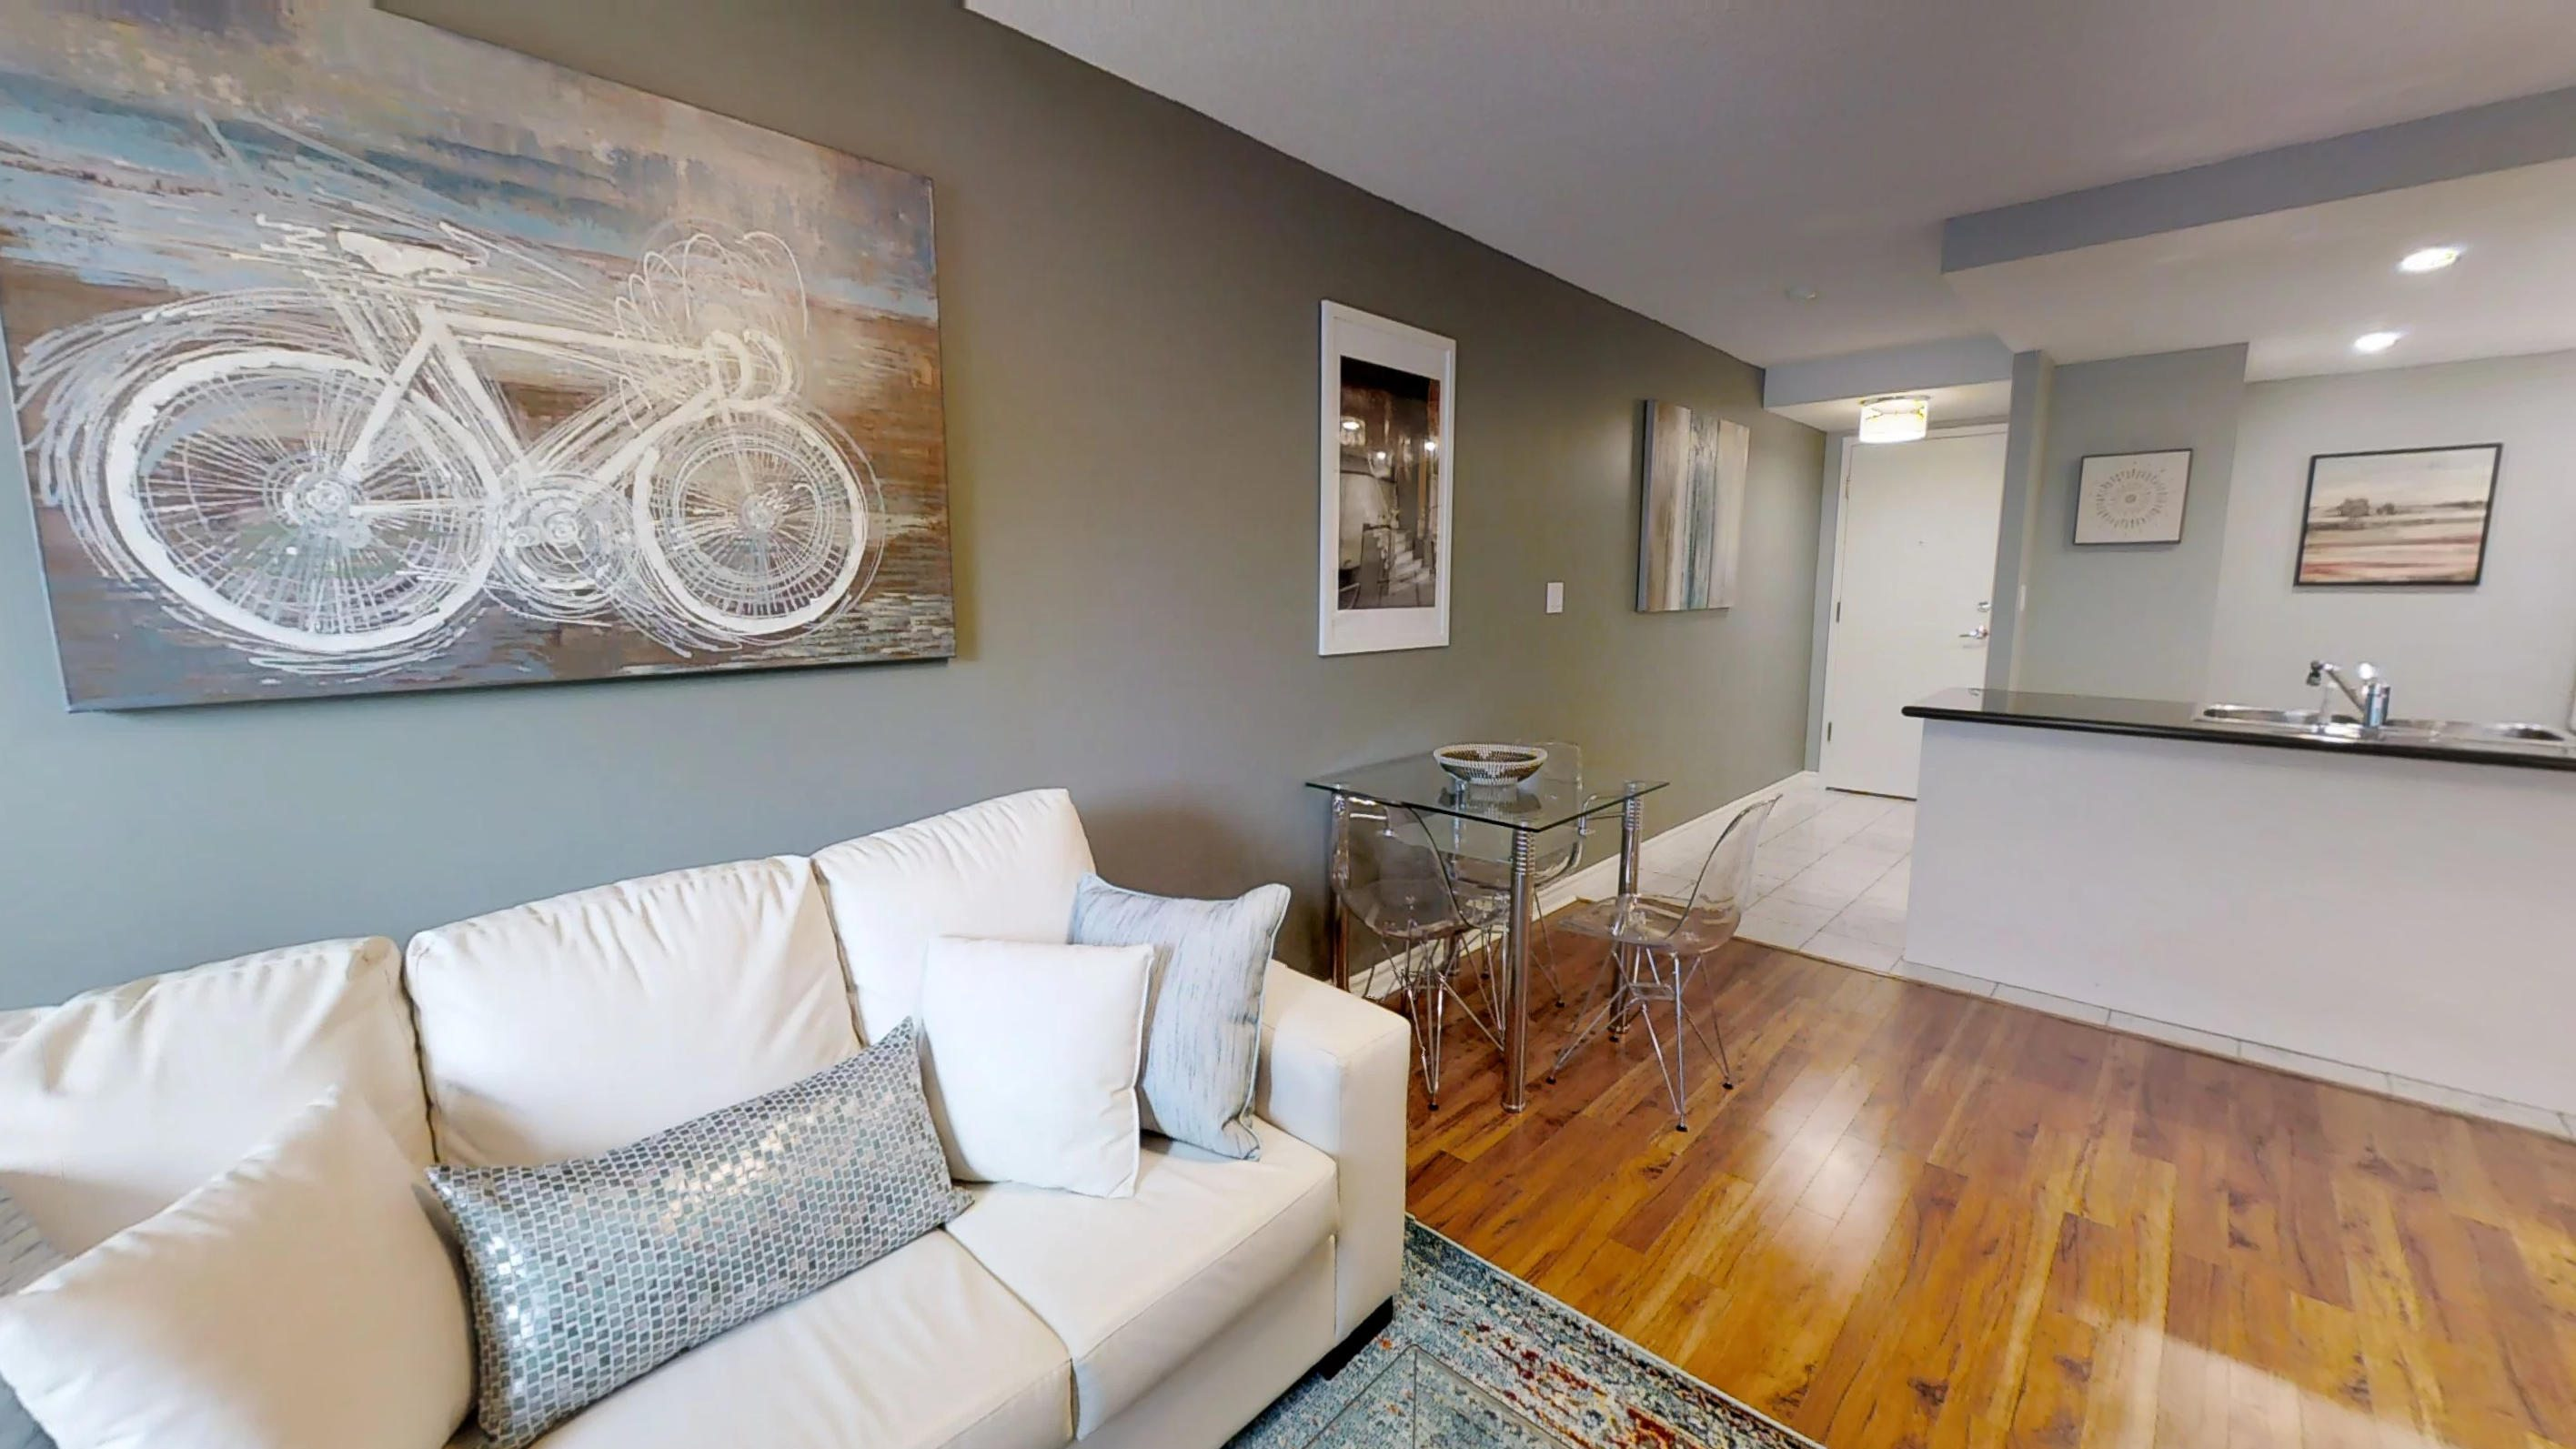 area rug over the hardwood floor in a toronto furnished apartment near simcoe and queen